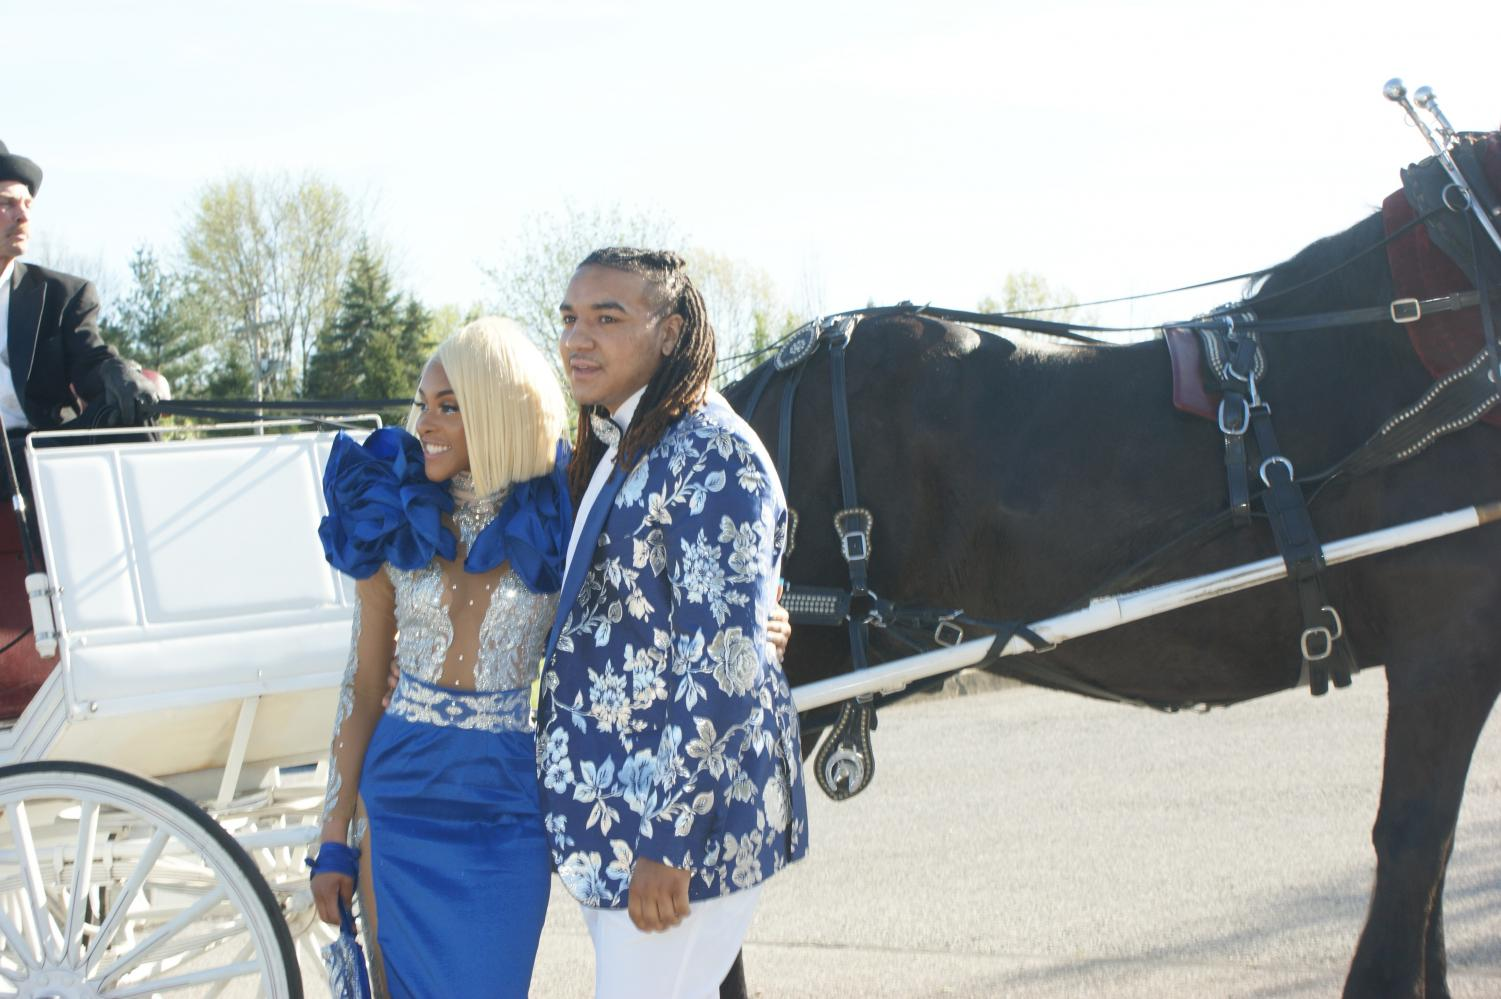 Anaiyah Morgan and Cole Ford arrived at Dallastown prom in a horse drawn carriage. The two showed off perfectly coordinated style as they made their way into Wisehaven Event Center for Dallastown Prom on Saturday, April 27, 2019.